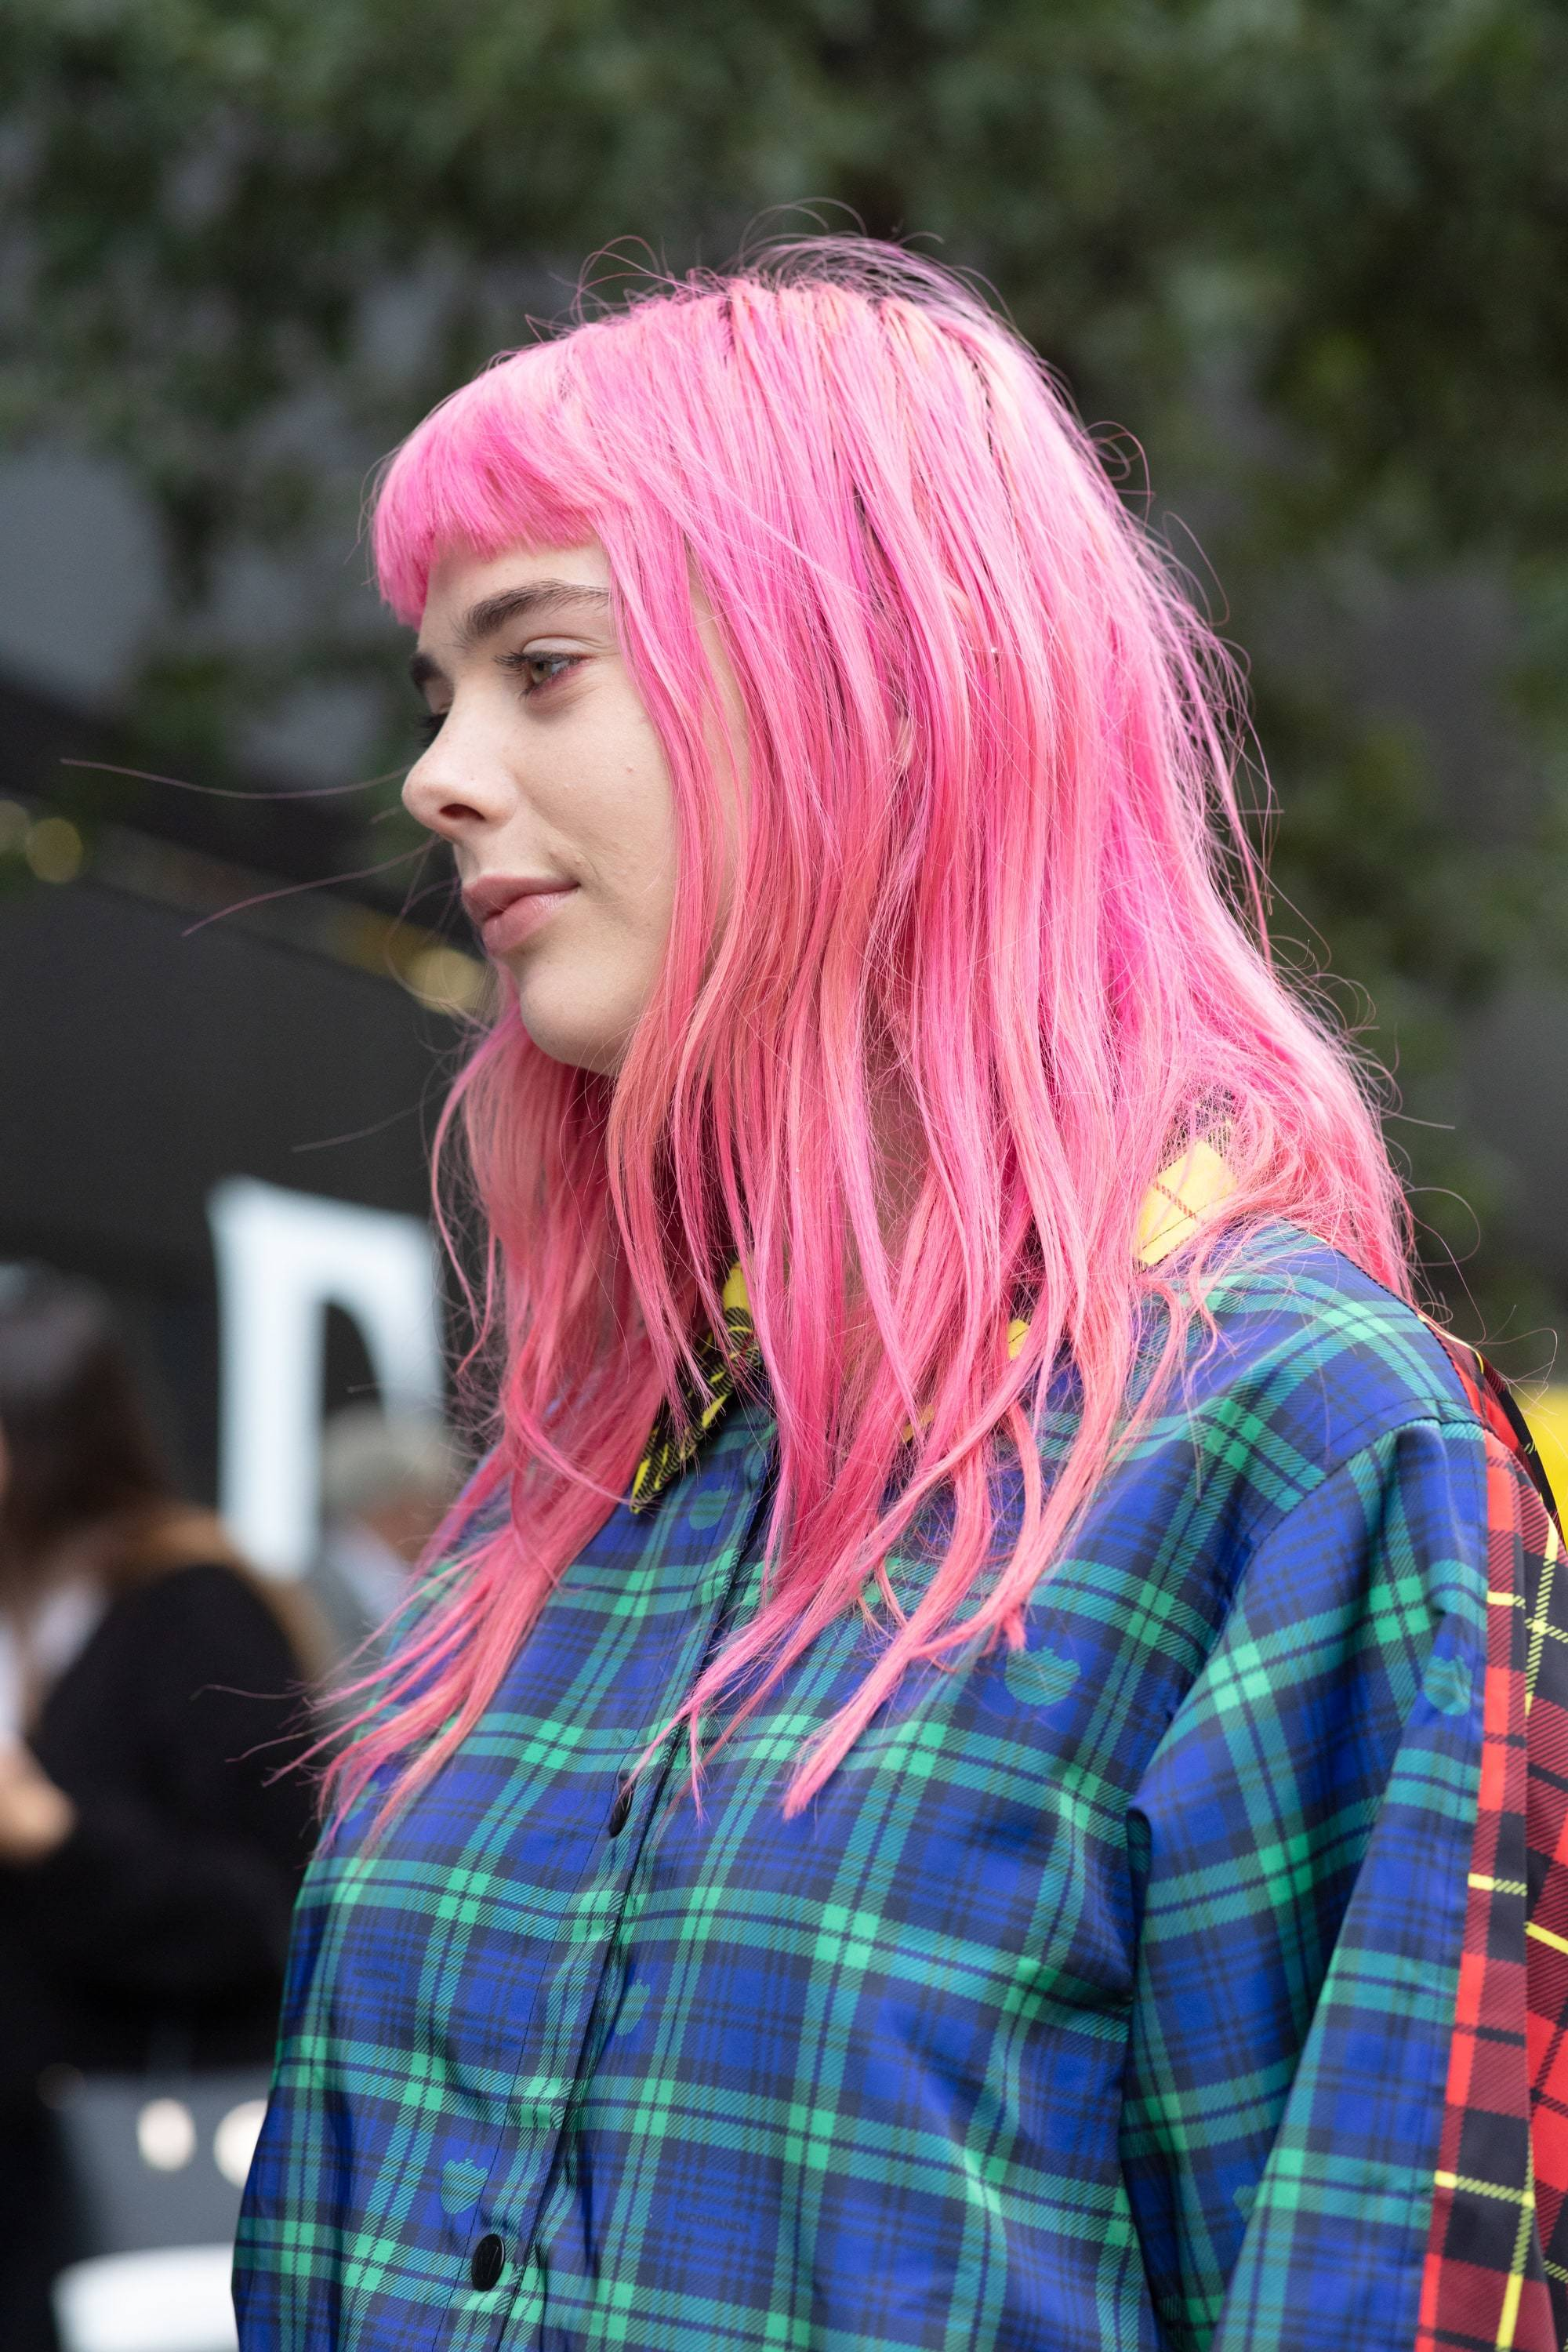 Hair treatment guide: Woman with medium neon pink hair with a micro fringe, wearing checked shirt